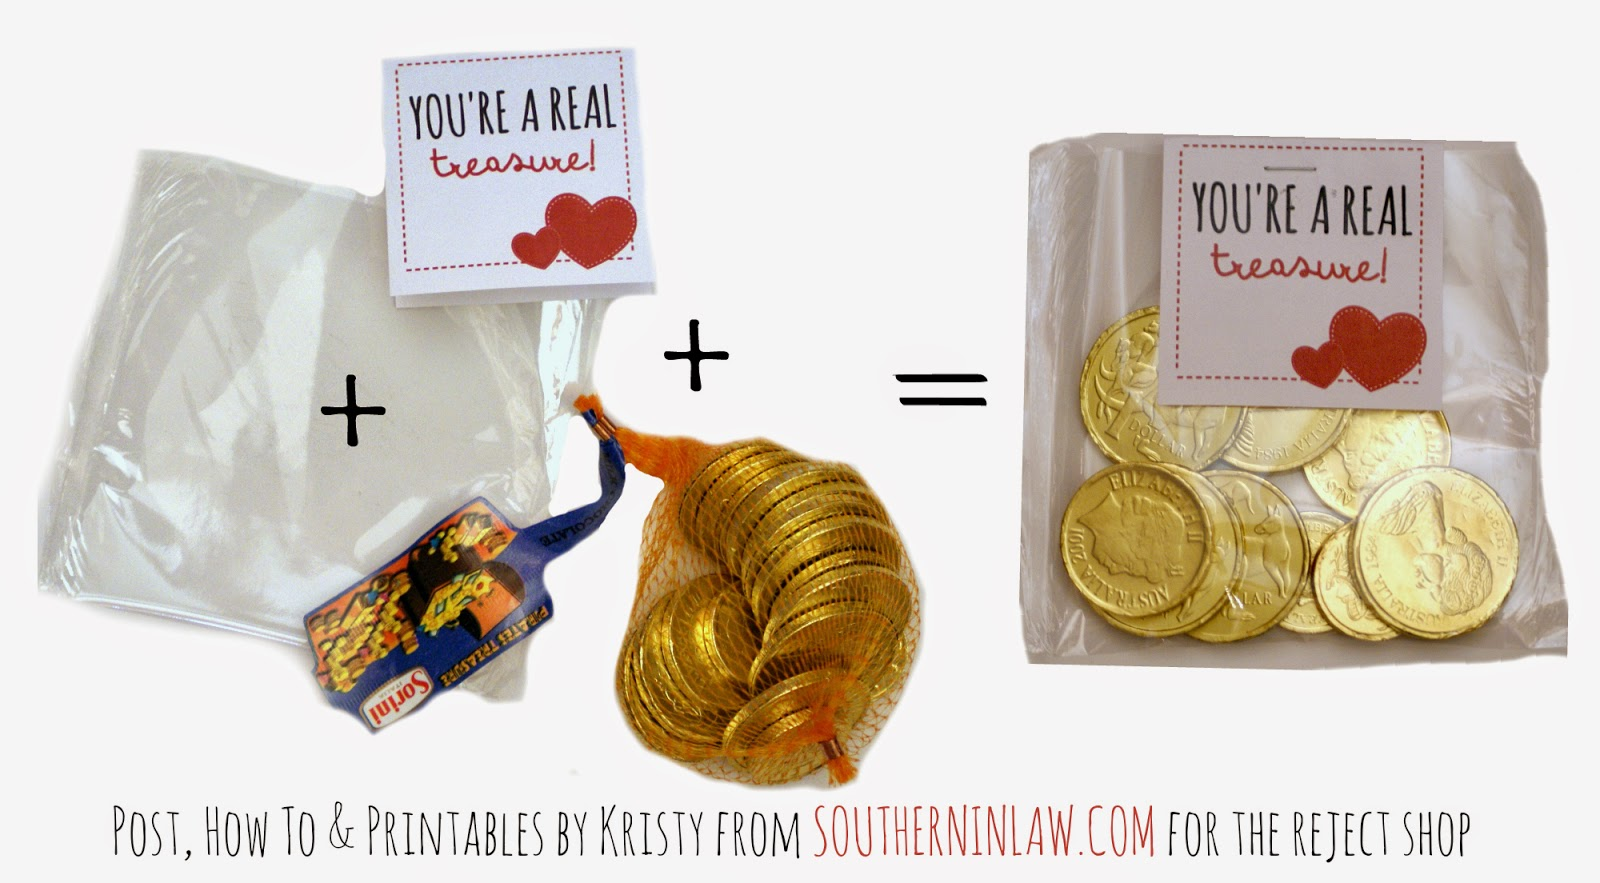 You're a Real Treasure - Chocolate Coins Valentines Gift Idea - Punny Valentines Gift Ideas Free Printable Valentines Cards